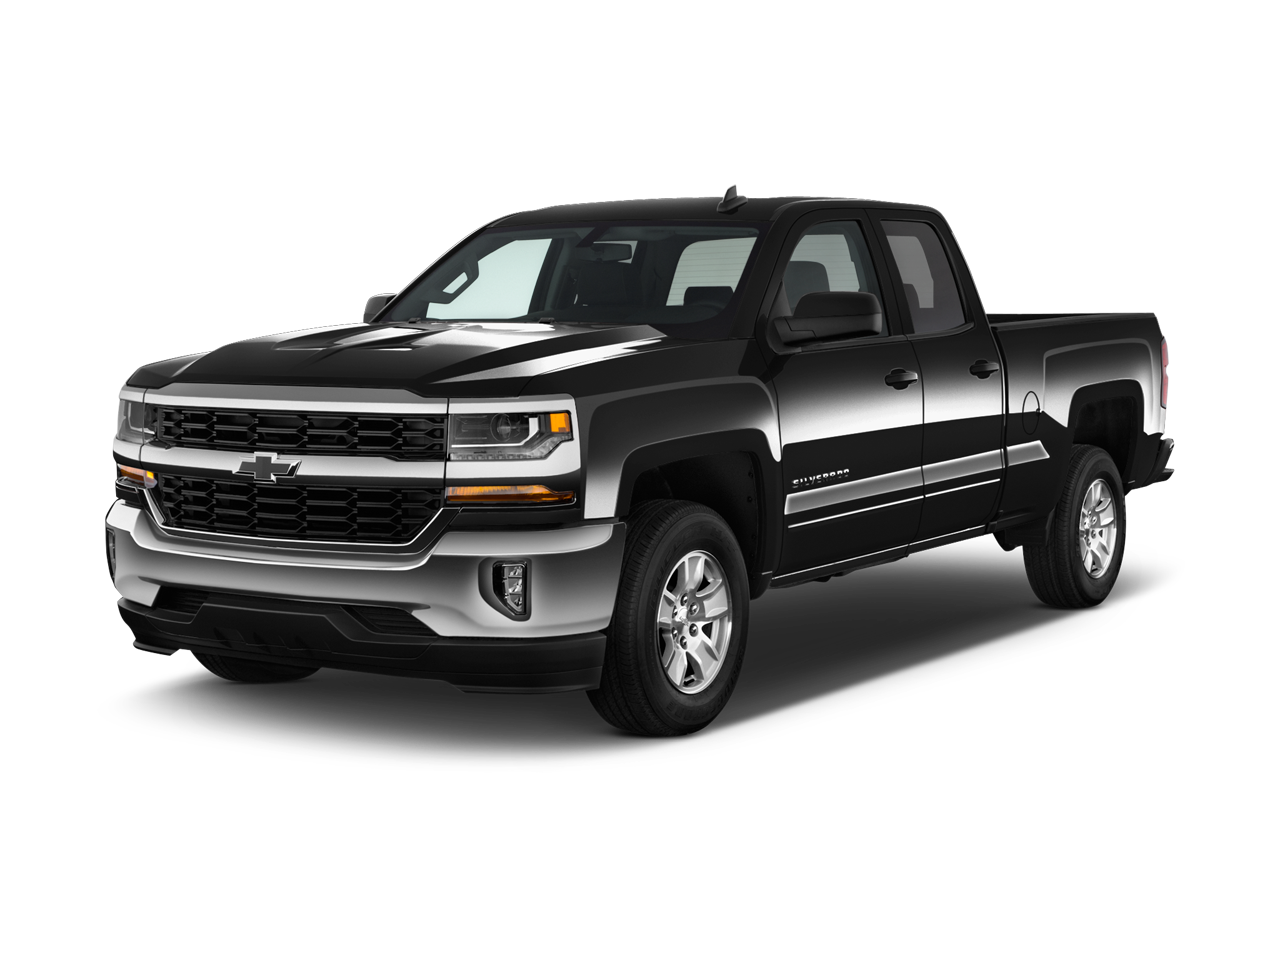 new 2017 chevrolet silverado 1500 custom near pryor ok roberts chevrolet buick gmc. Black Bedroom Furniture Sets. Home Design Ideas